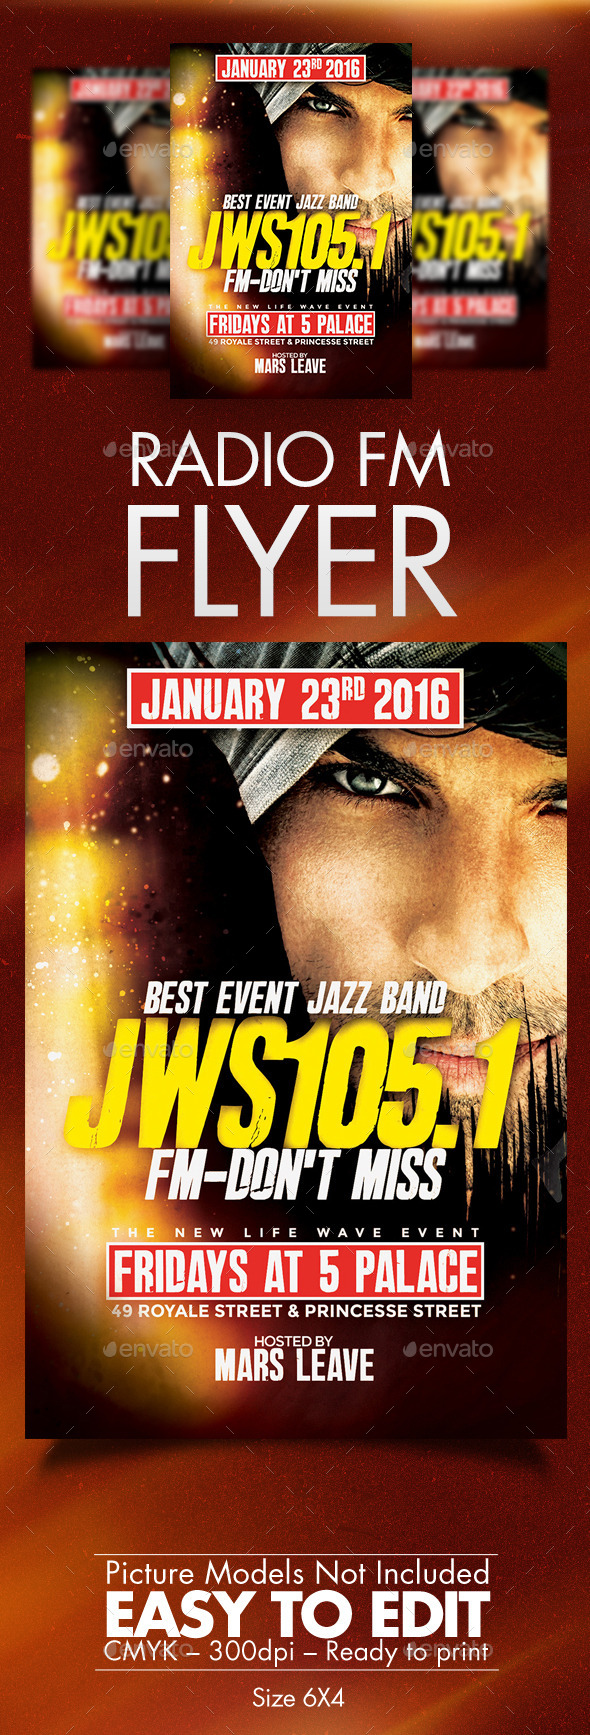 Jws105.1 Fm Flyer Template - Clubs & Parties Events